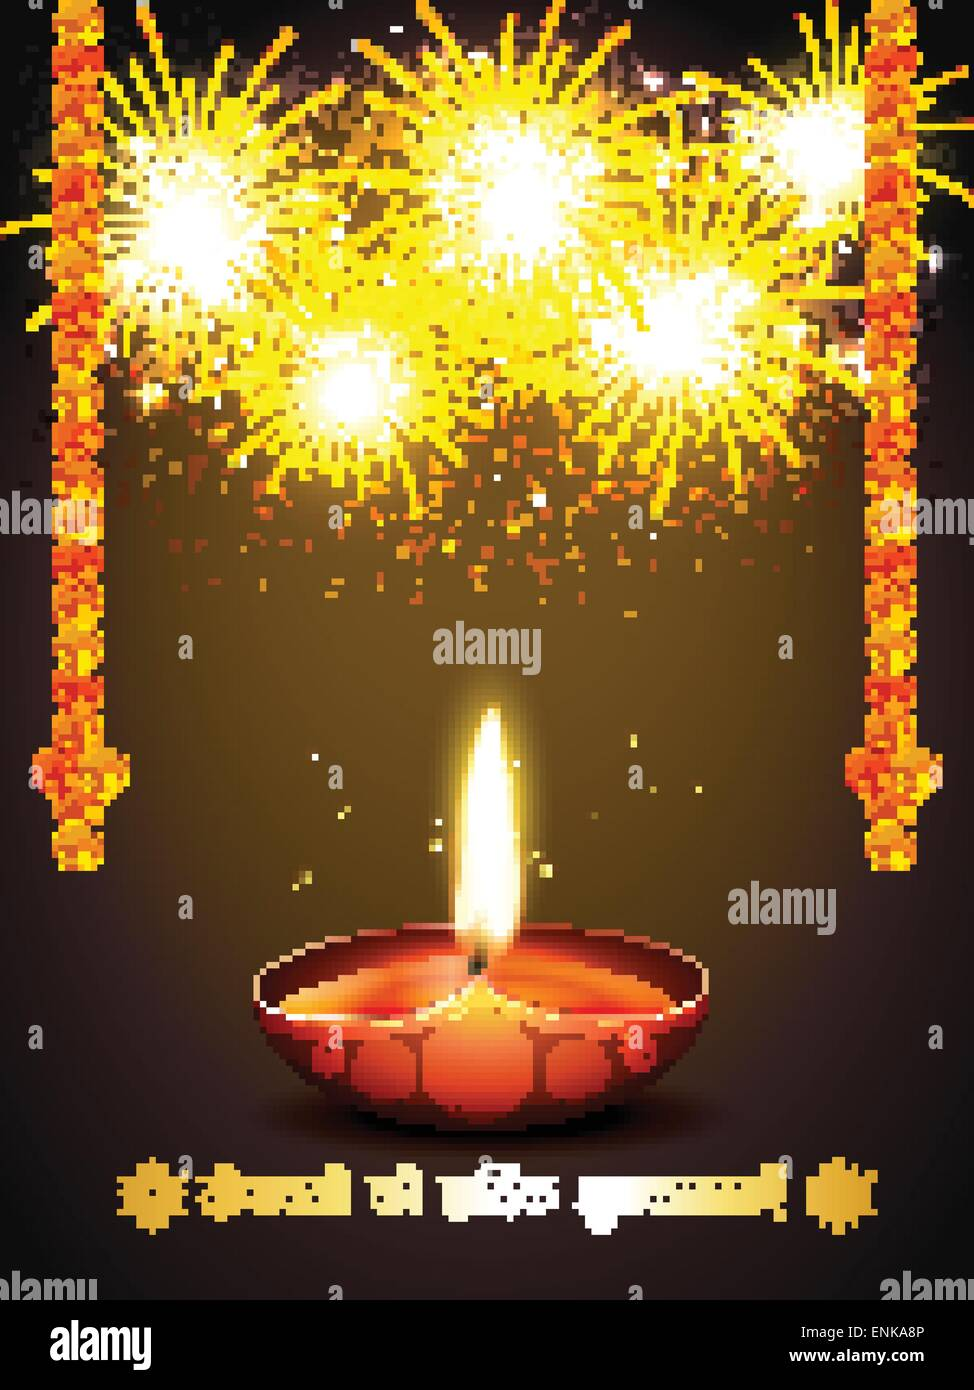 Beautiful diwali festival lamp fireworks stock photos beautiful happy diwali greeting with fireworks stock image kristyandbryce Image collections